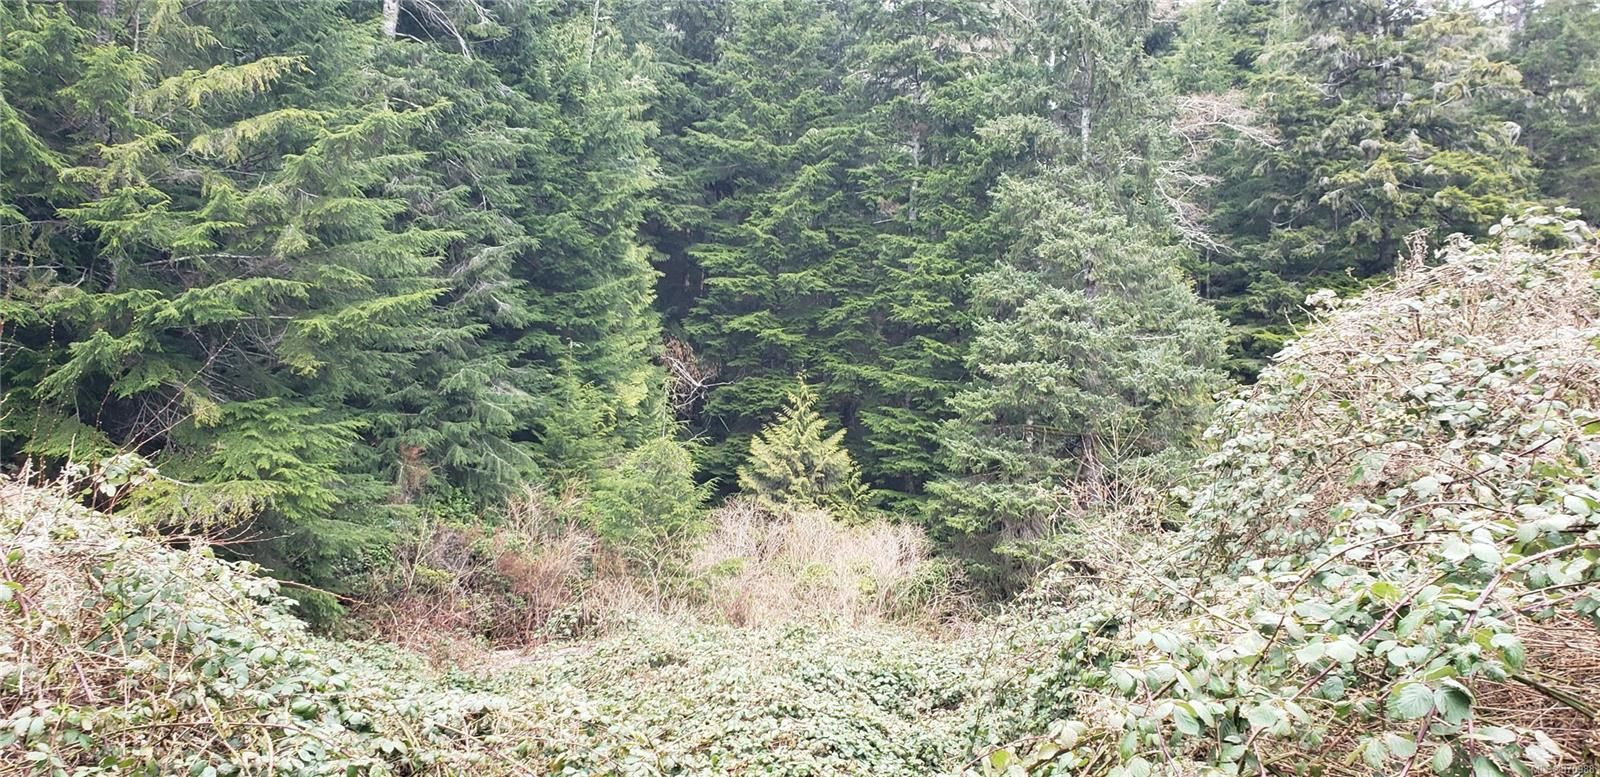 Main Photo: Lot 17 Haggard Cove in : PA Alberni Inlet Land for sale (Port Alberni)  : MLS®# 870988